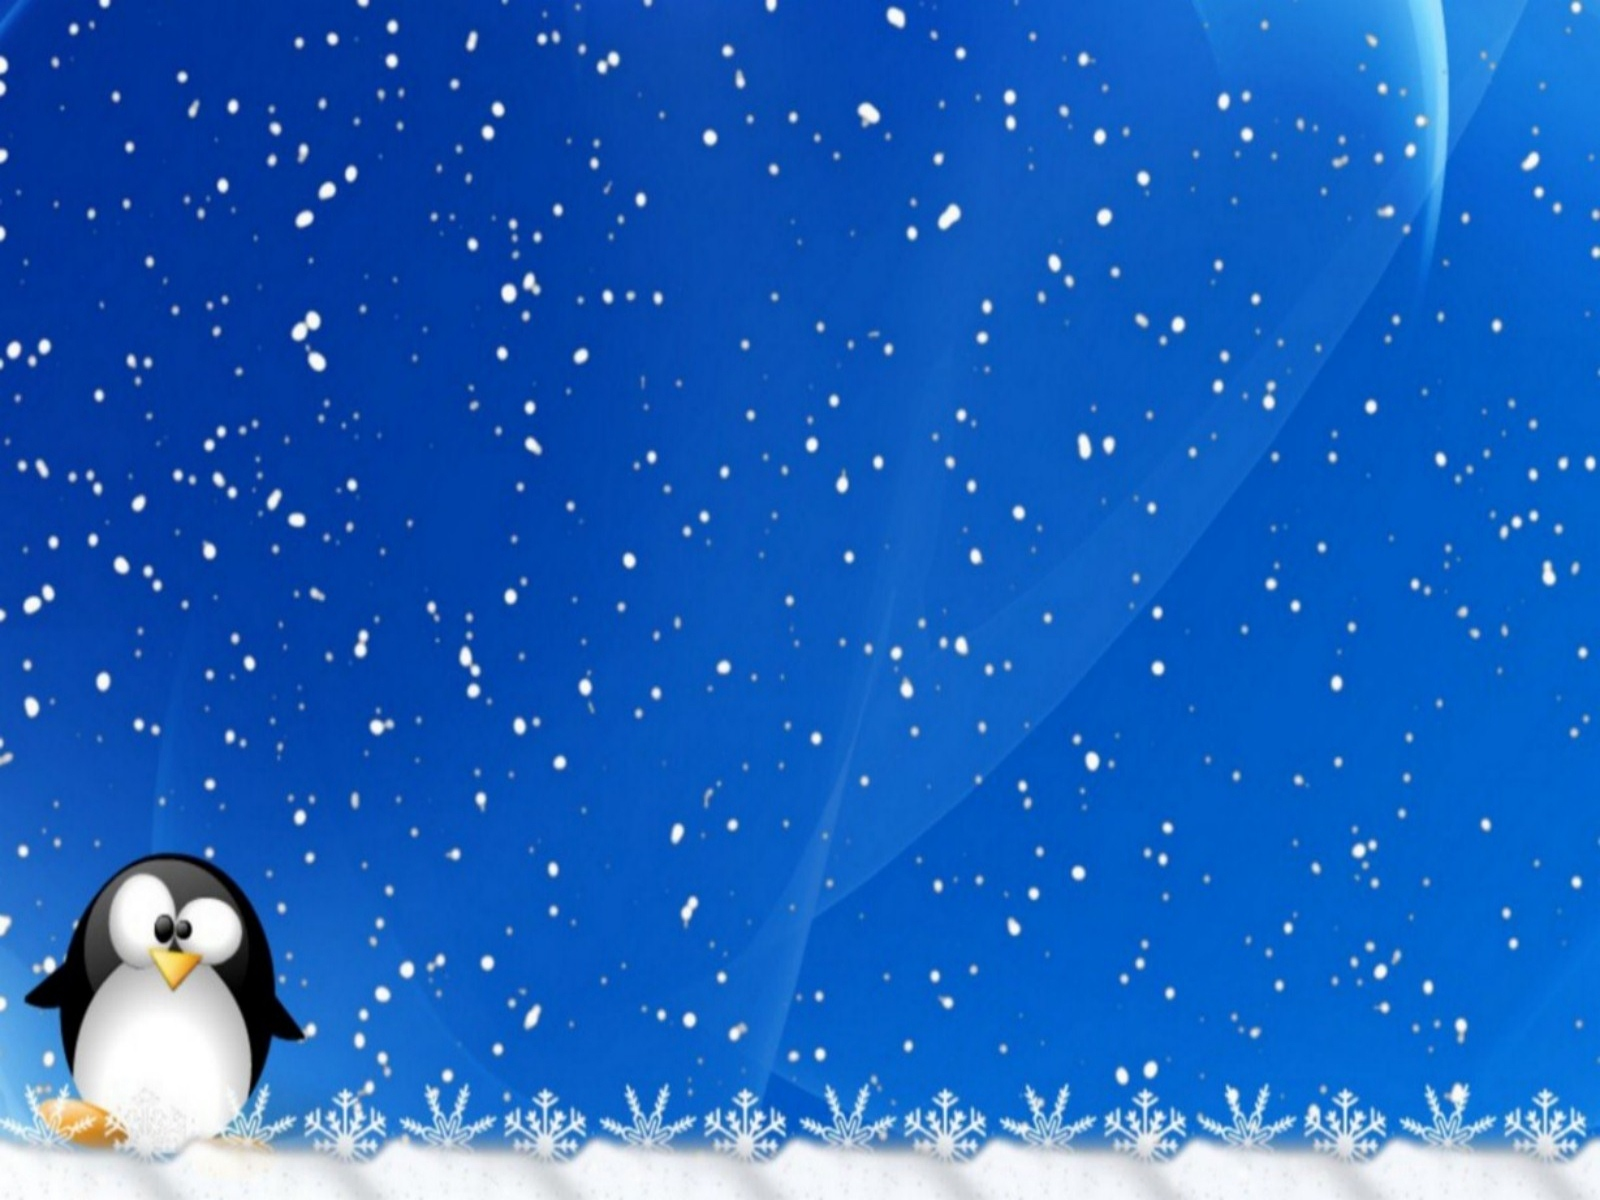 Christmas winter idyll desktop background wallpaper image 1600x1200